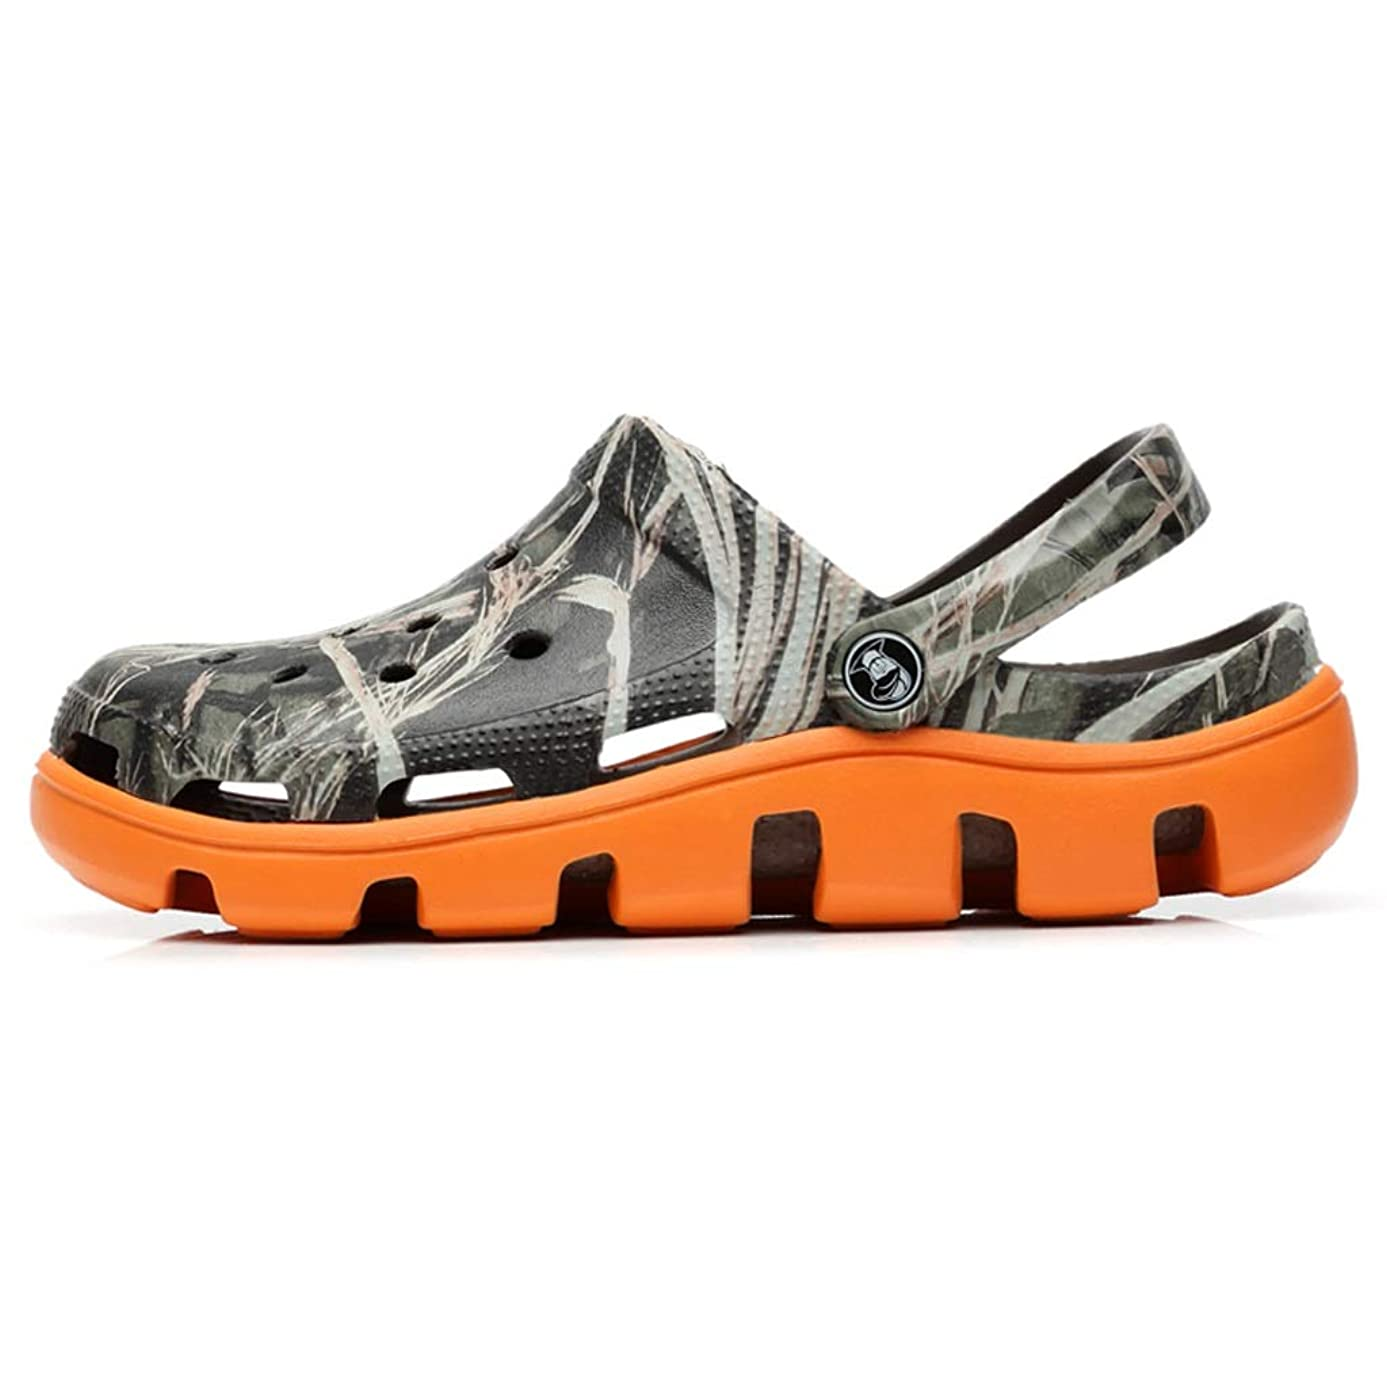 JQMKKTX Sandals and Slippers, Men's Summer Shoes